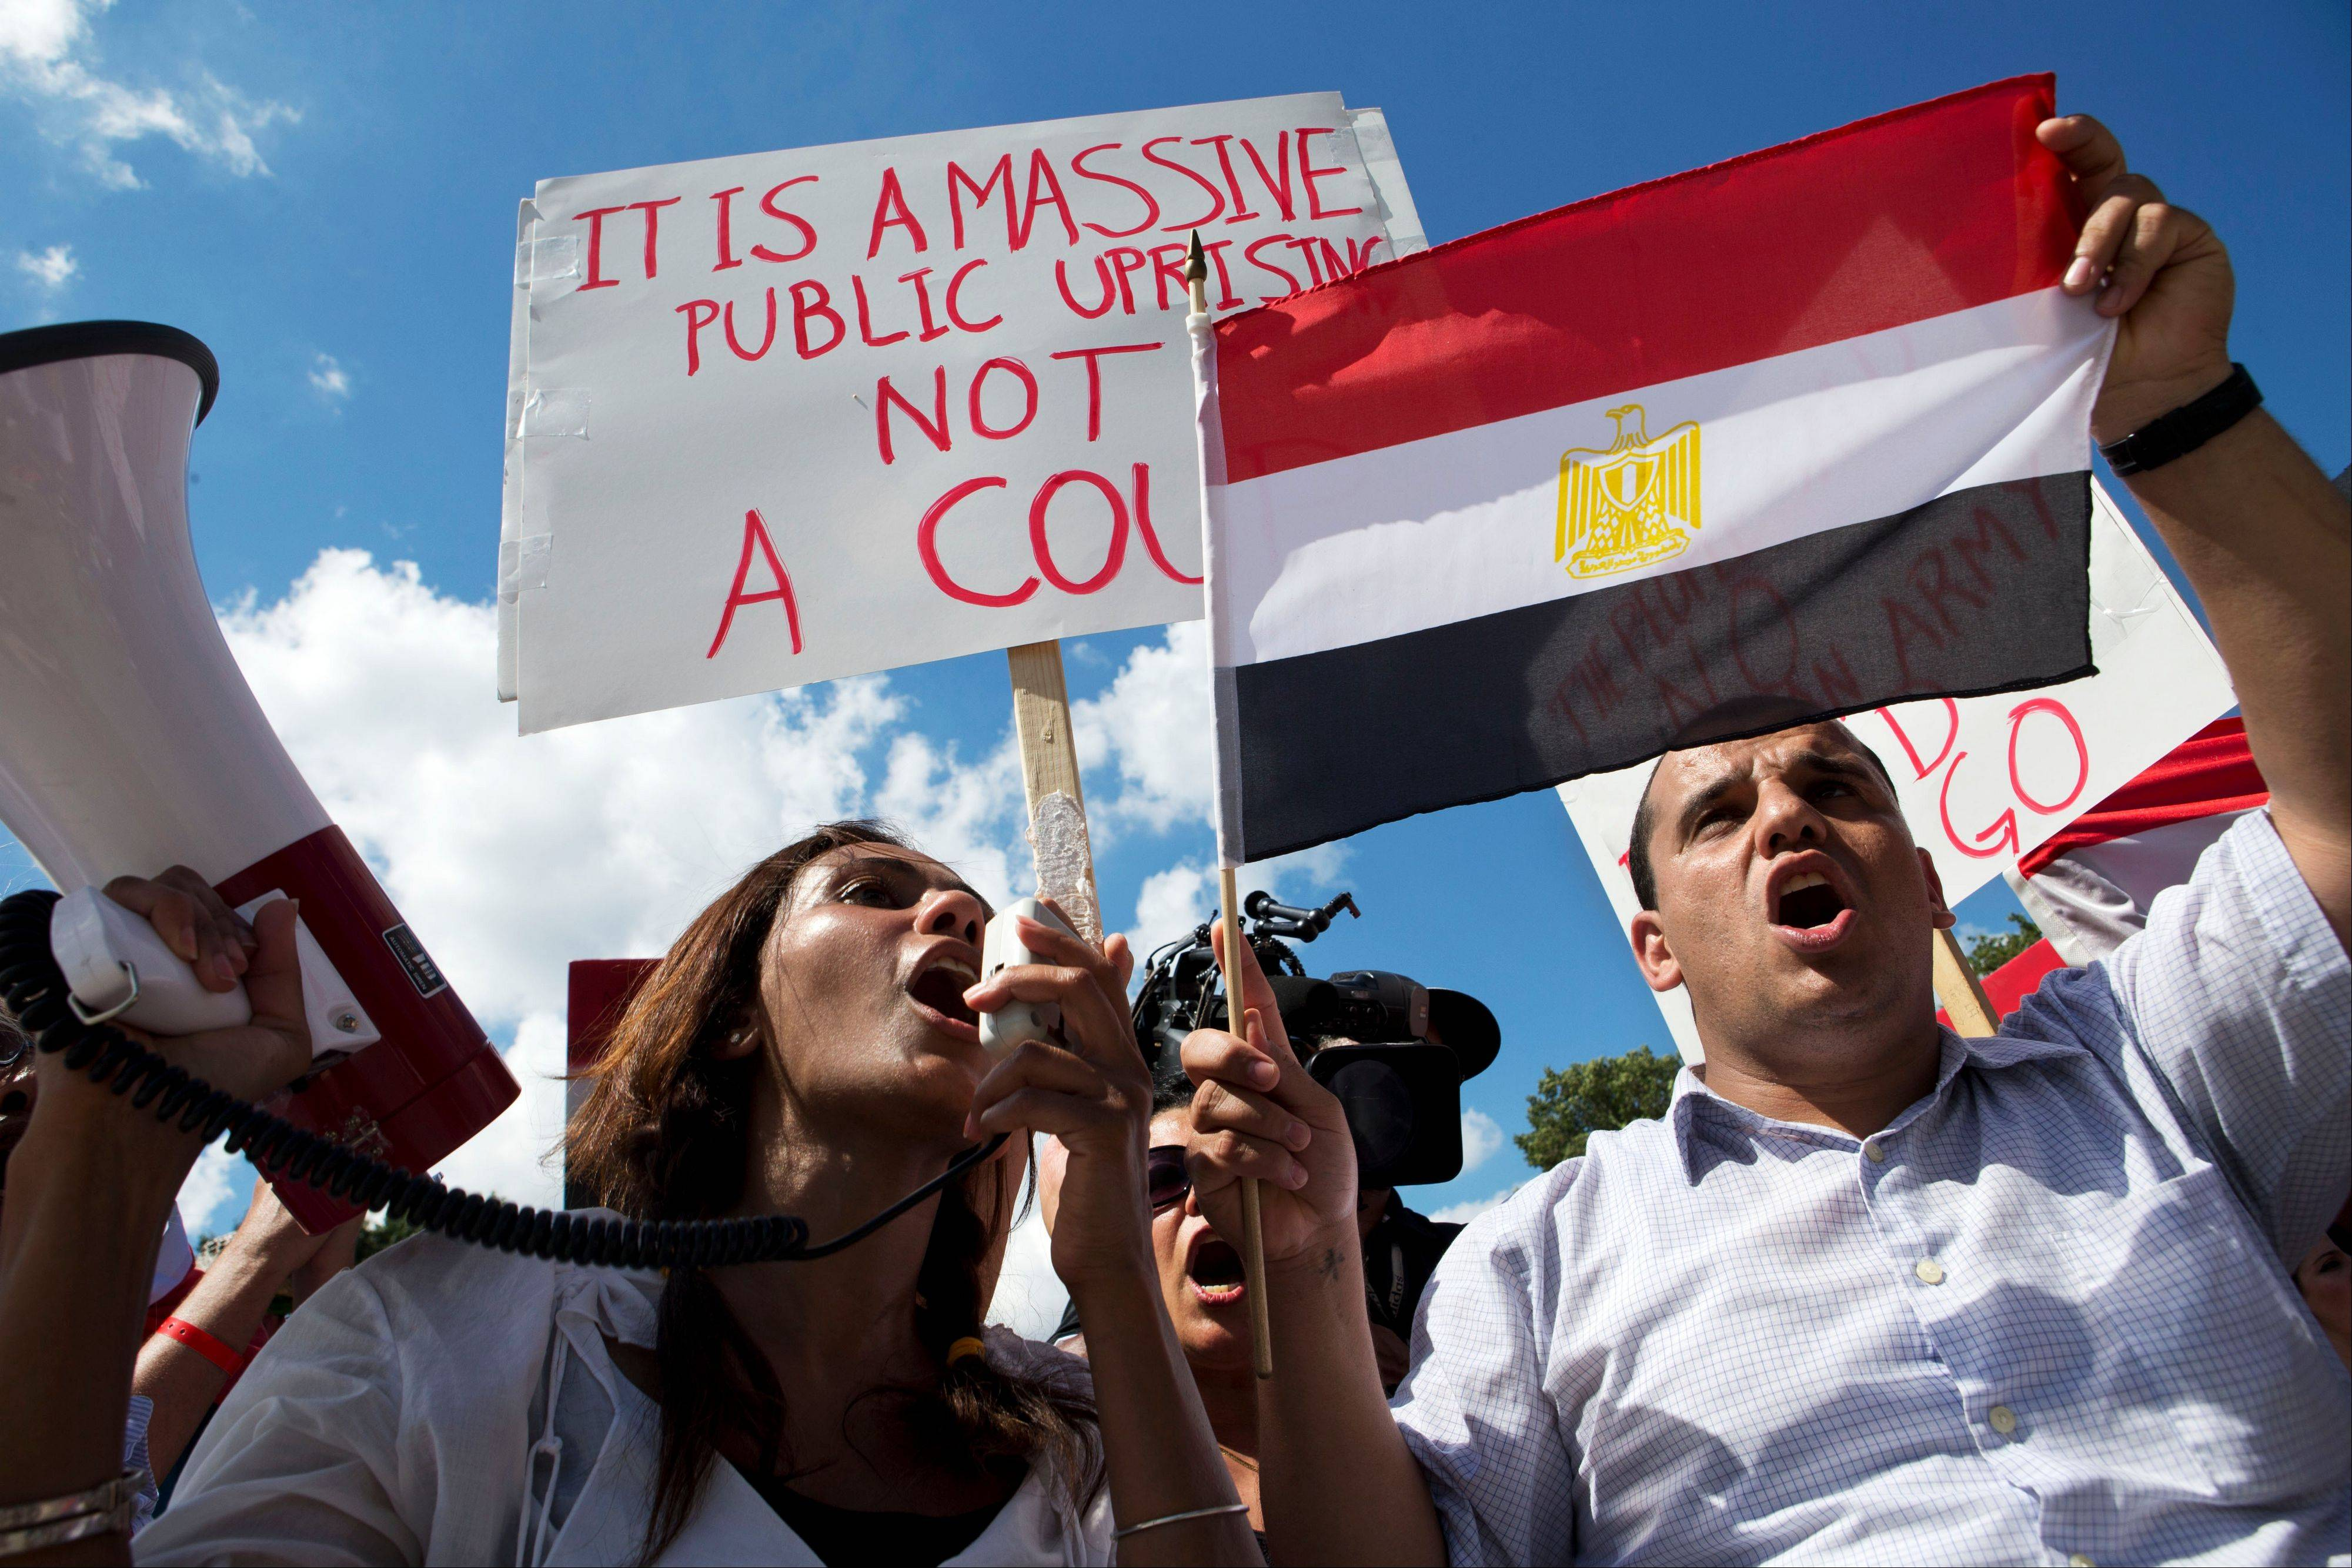 Mena Rashdi, right, of Vienna, Va., rallies with other anti-Morsi demonstrators by the White House in support of the Egyptian military in Washington on Saturday.